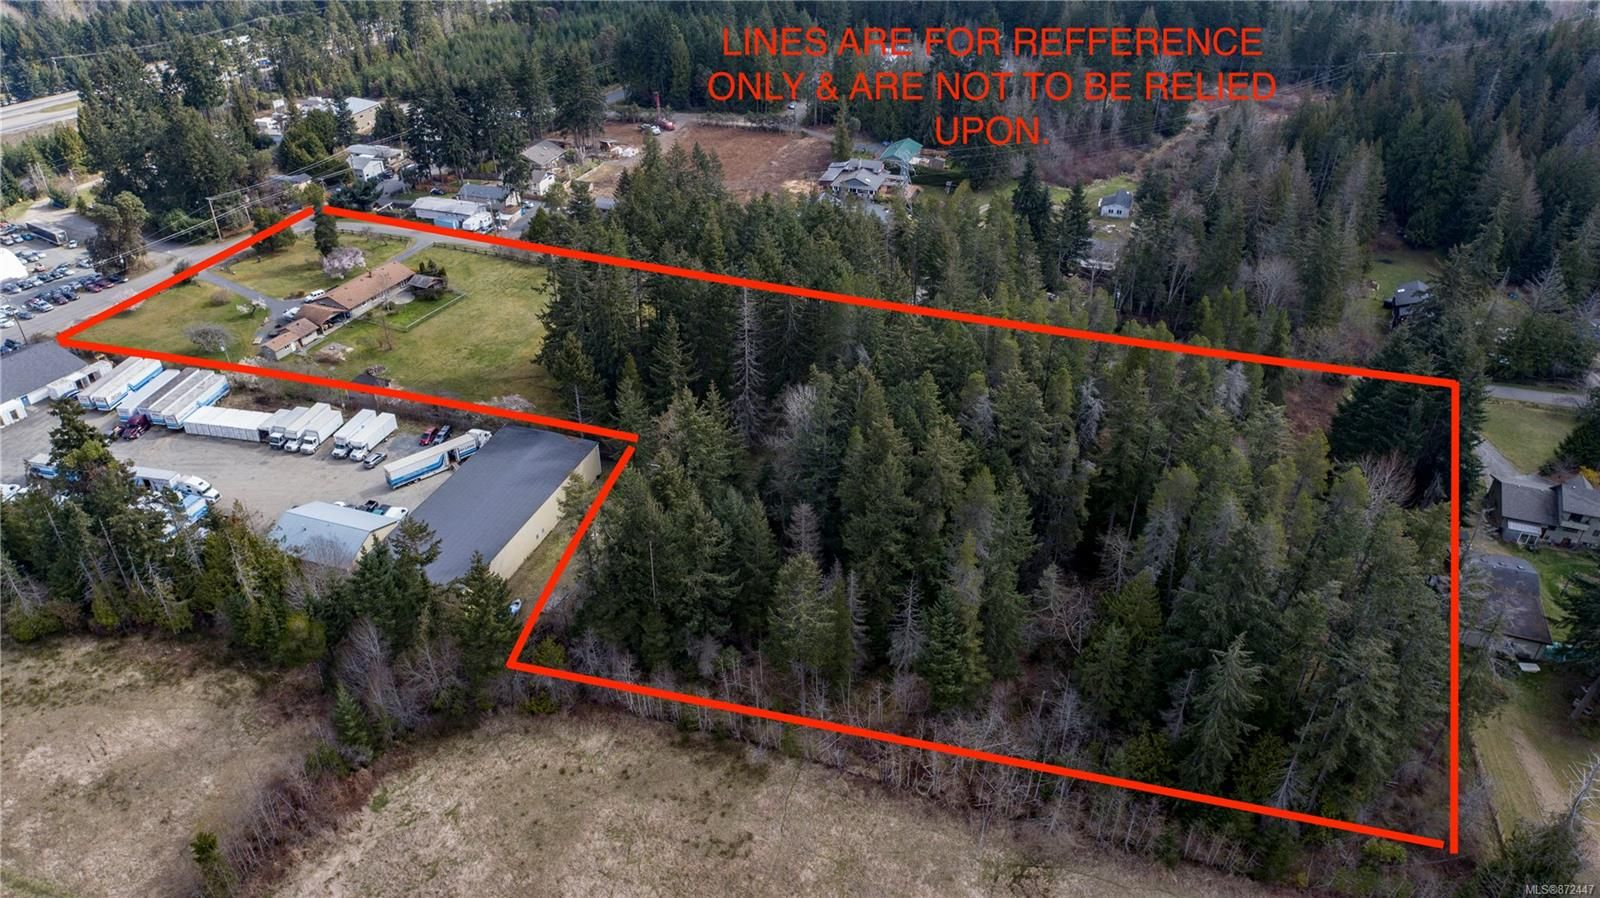 Main Photo: 840 Allsbrook Rd in : PQ Errington/Coombs/Hilliers Mixed Use for sale (Parksville/Qualicum)  : MLS®# 872447